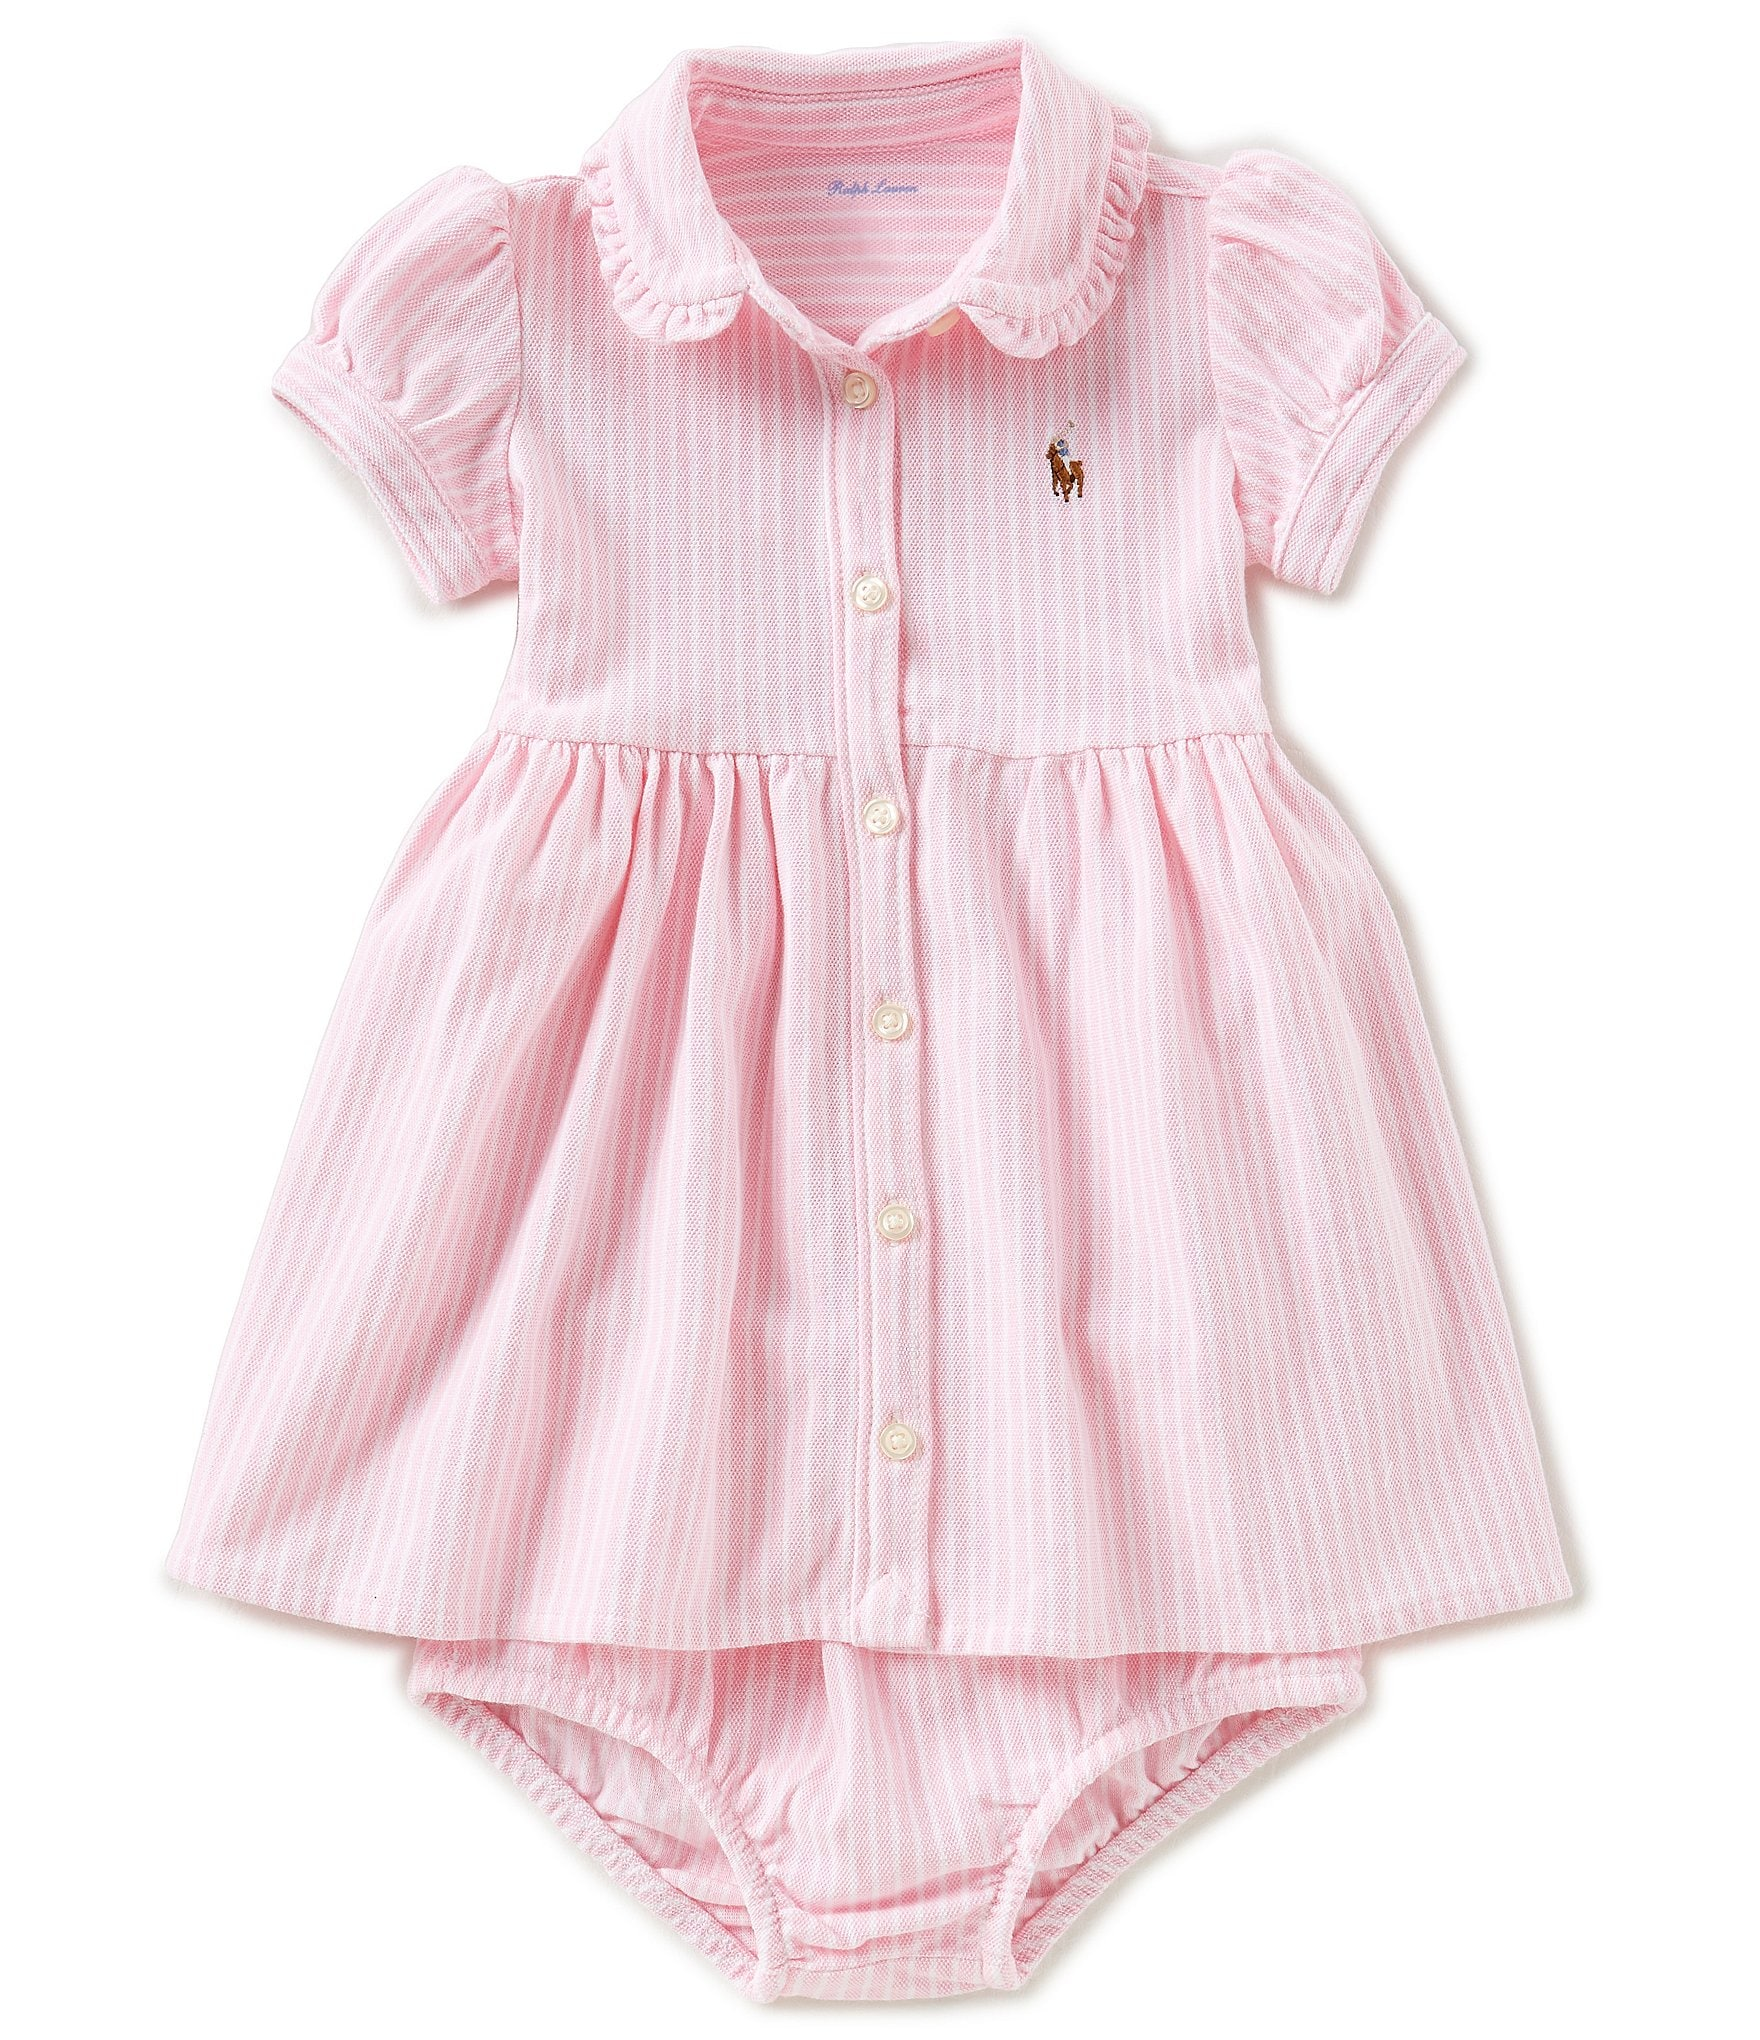 Ralph Lauren Baby Girl Clothing